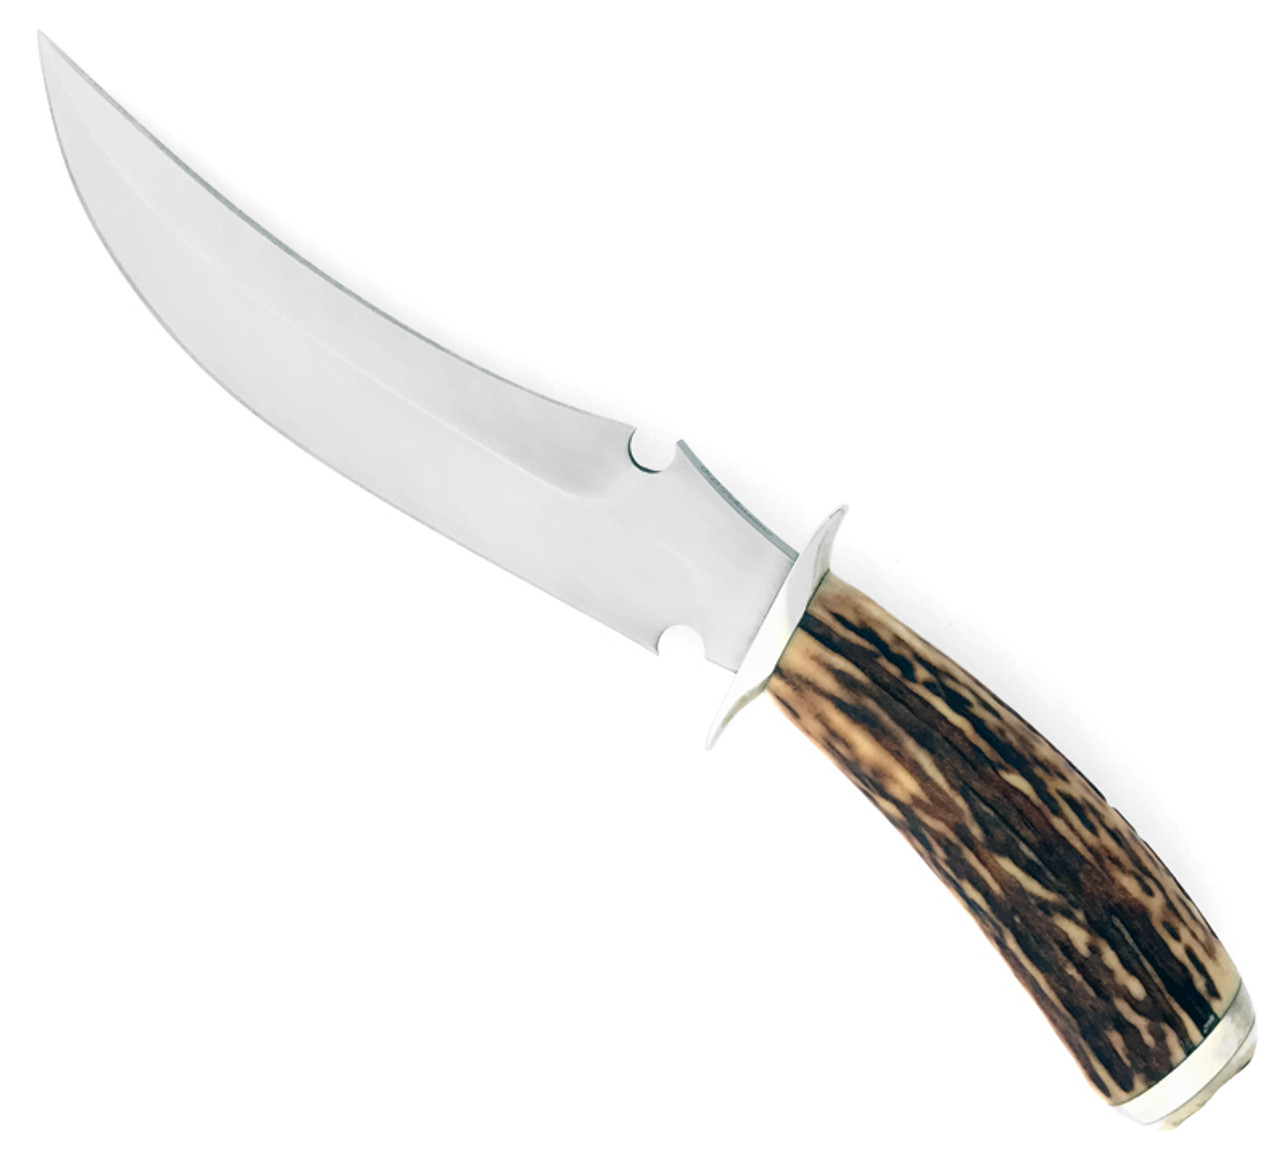 R.B. Johnson Custom Bowie Fighting Knife Genuine Stag